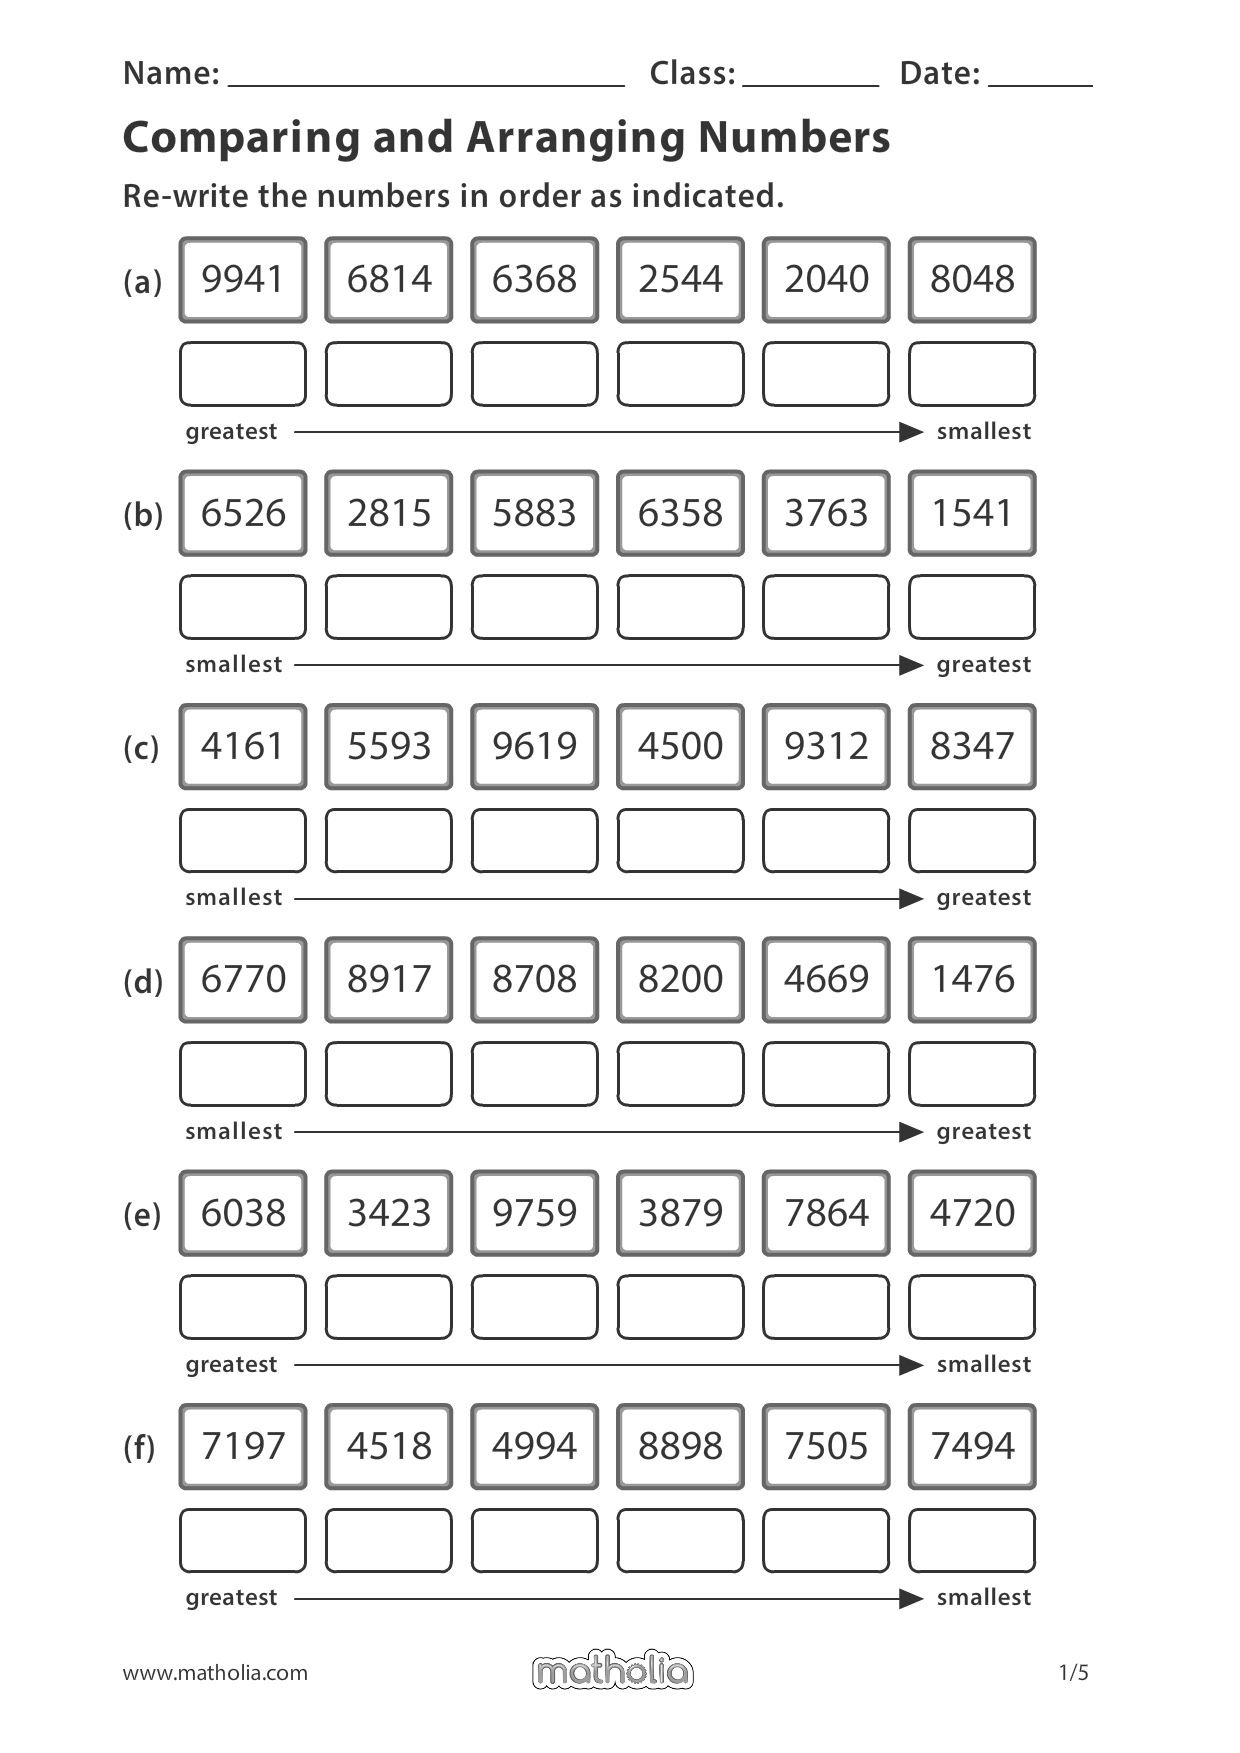 medium resolution of Comparing and Arranging Numbers   3rd grade math worksheets